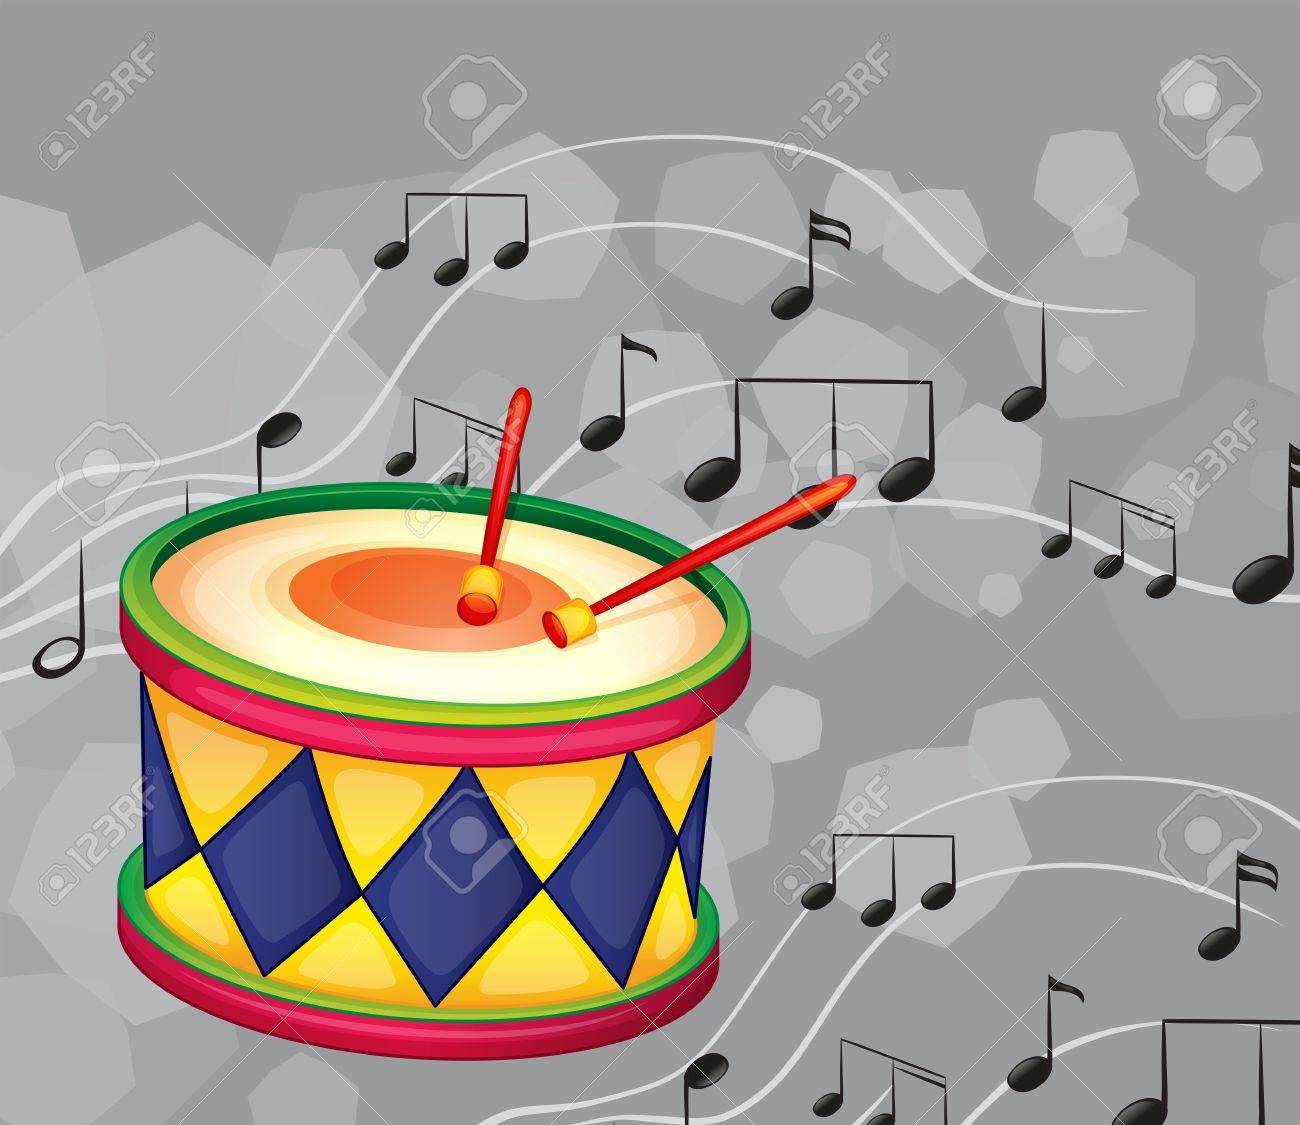 illustration of a drum with musical notes royalty free cliparts rh 123rf com Animated Drums Singing Clip Art